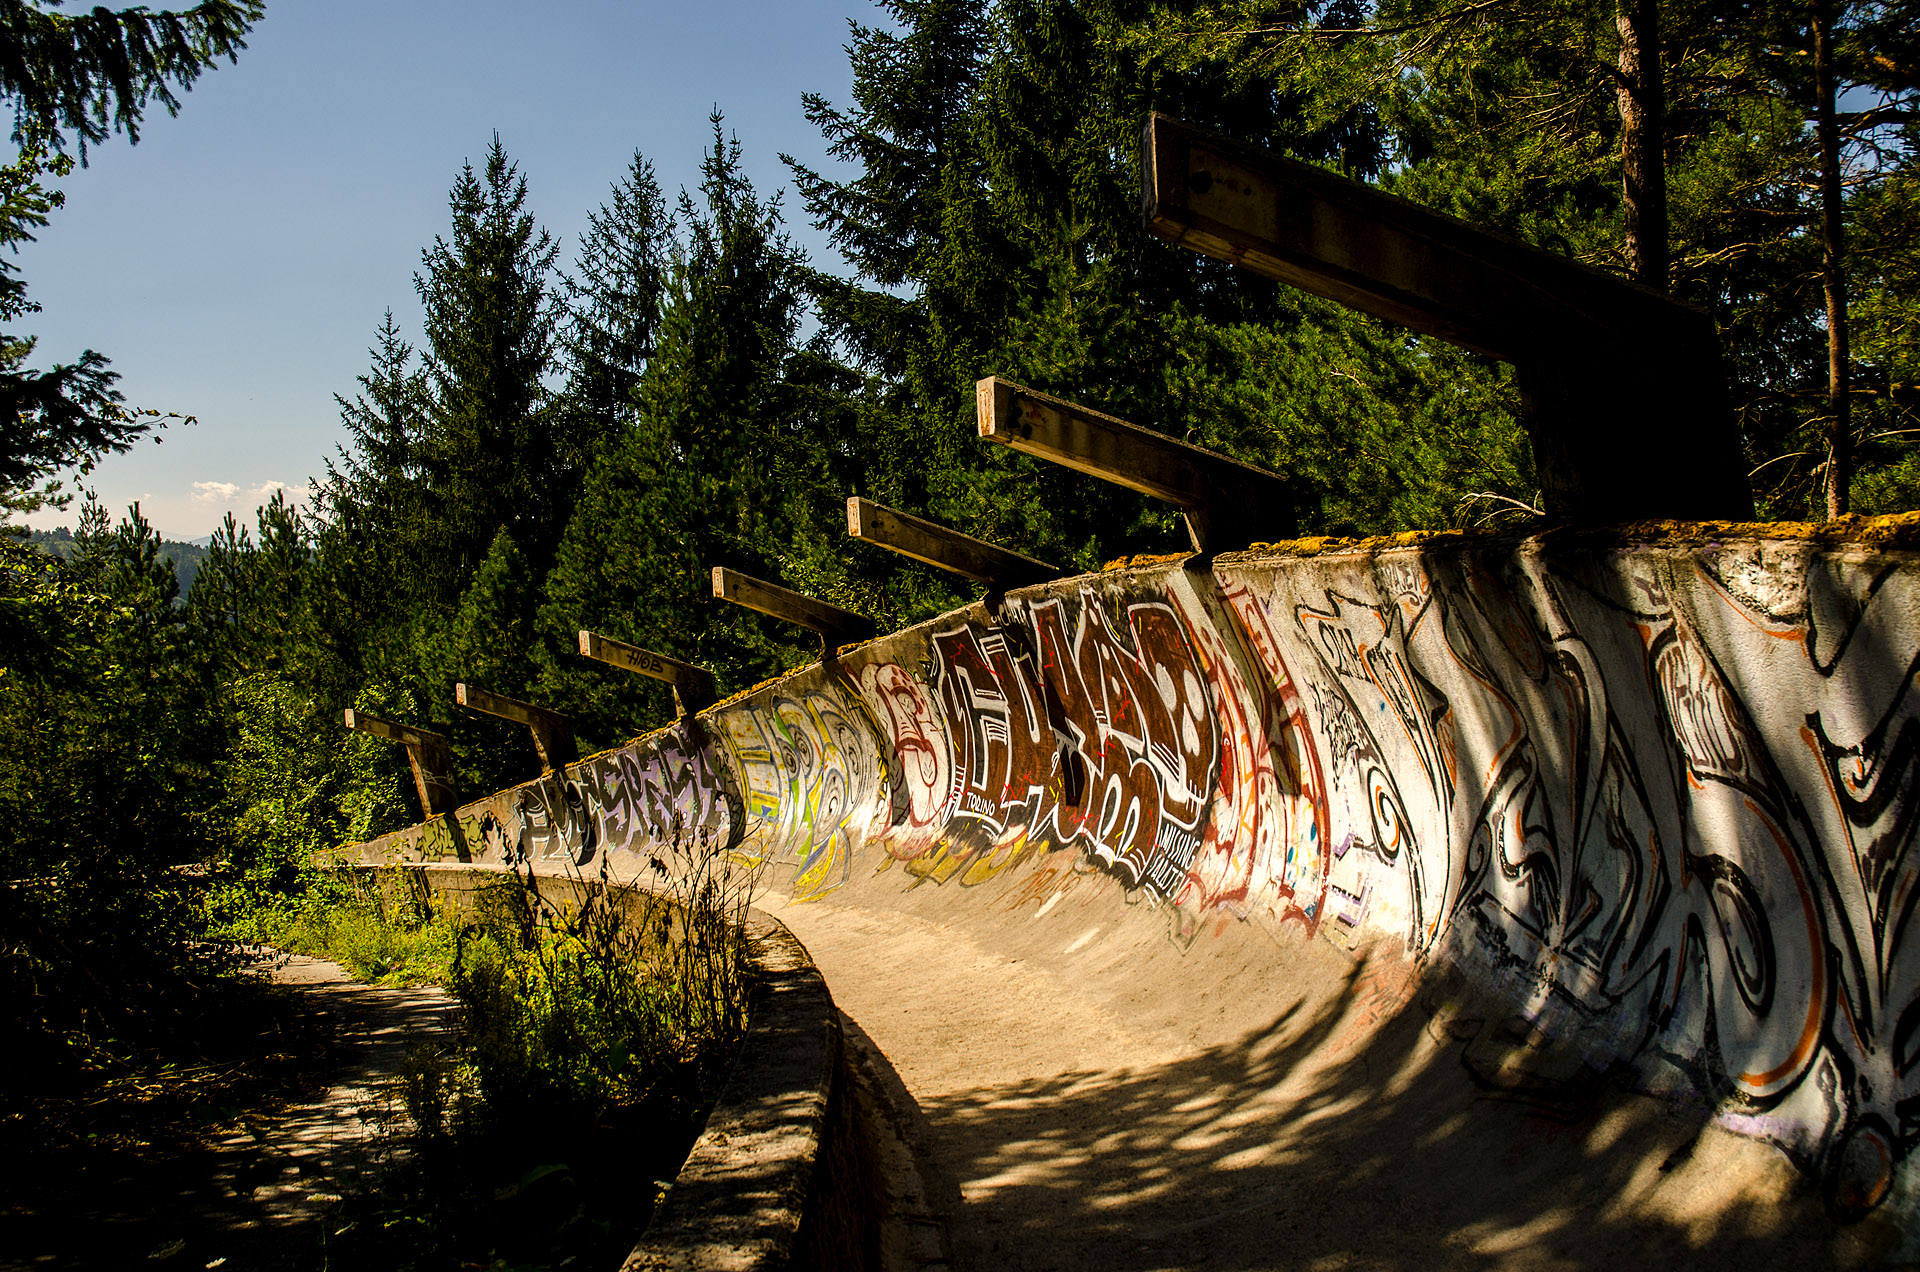 1984 Olympic bobsled course